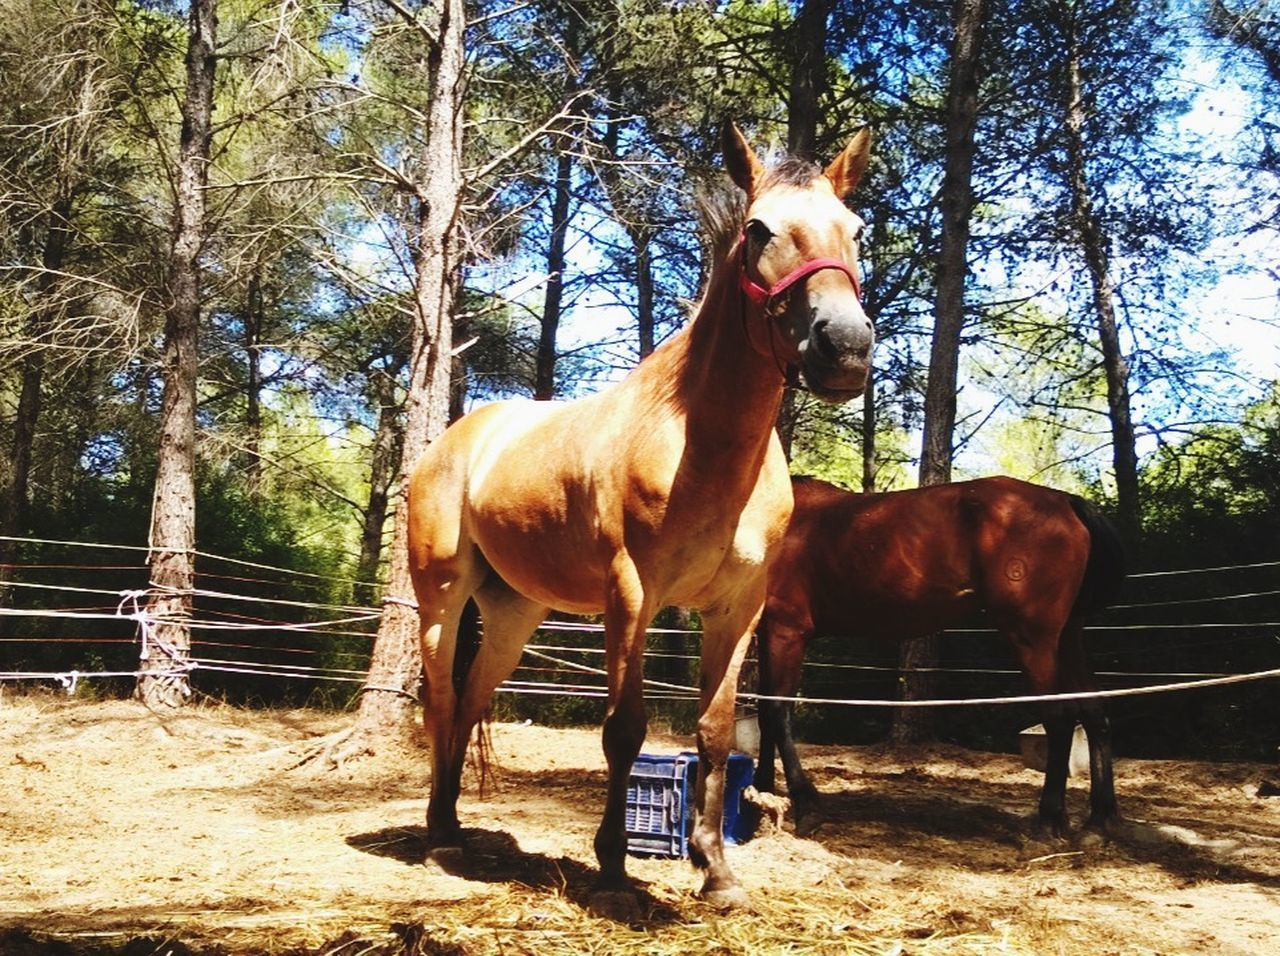 HORSE STANDING IN RANCH AGAINST TREES